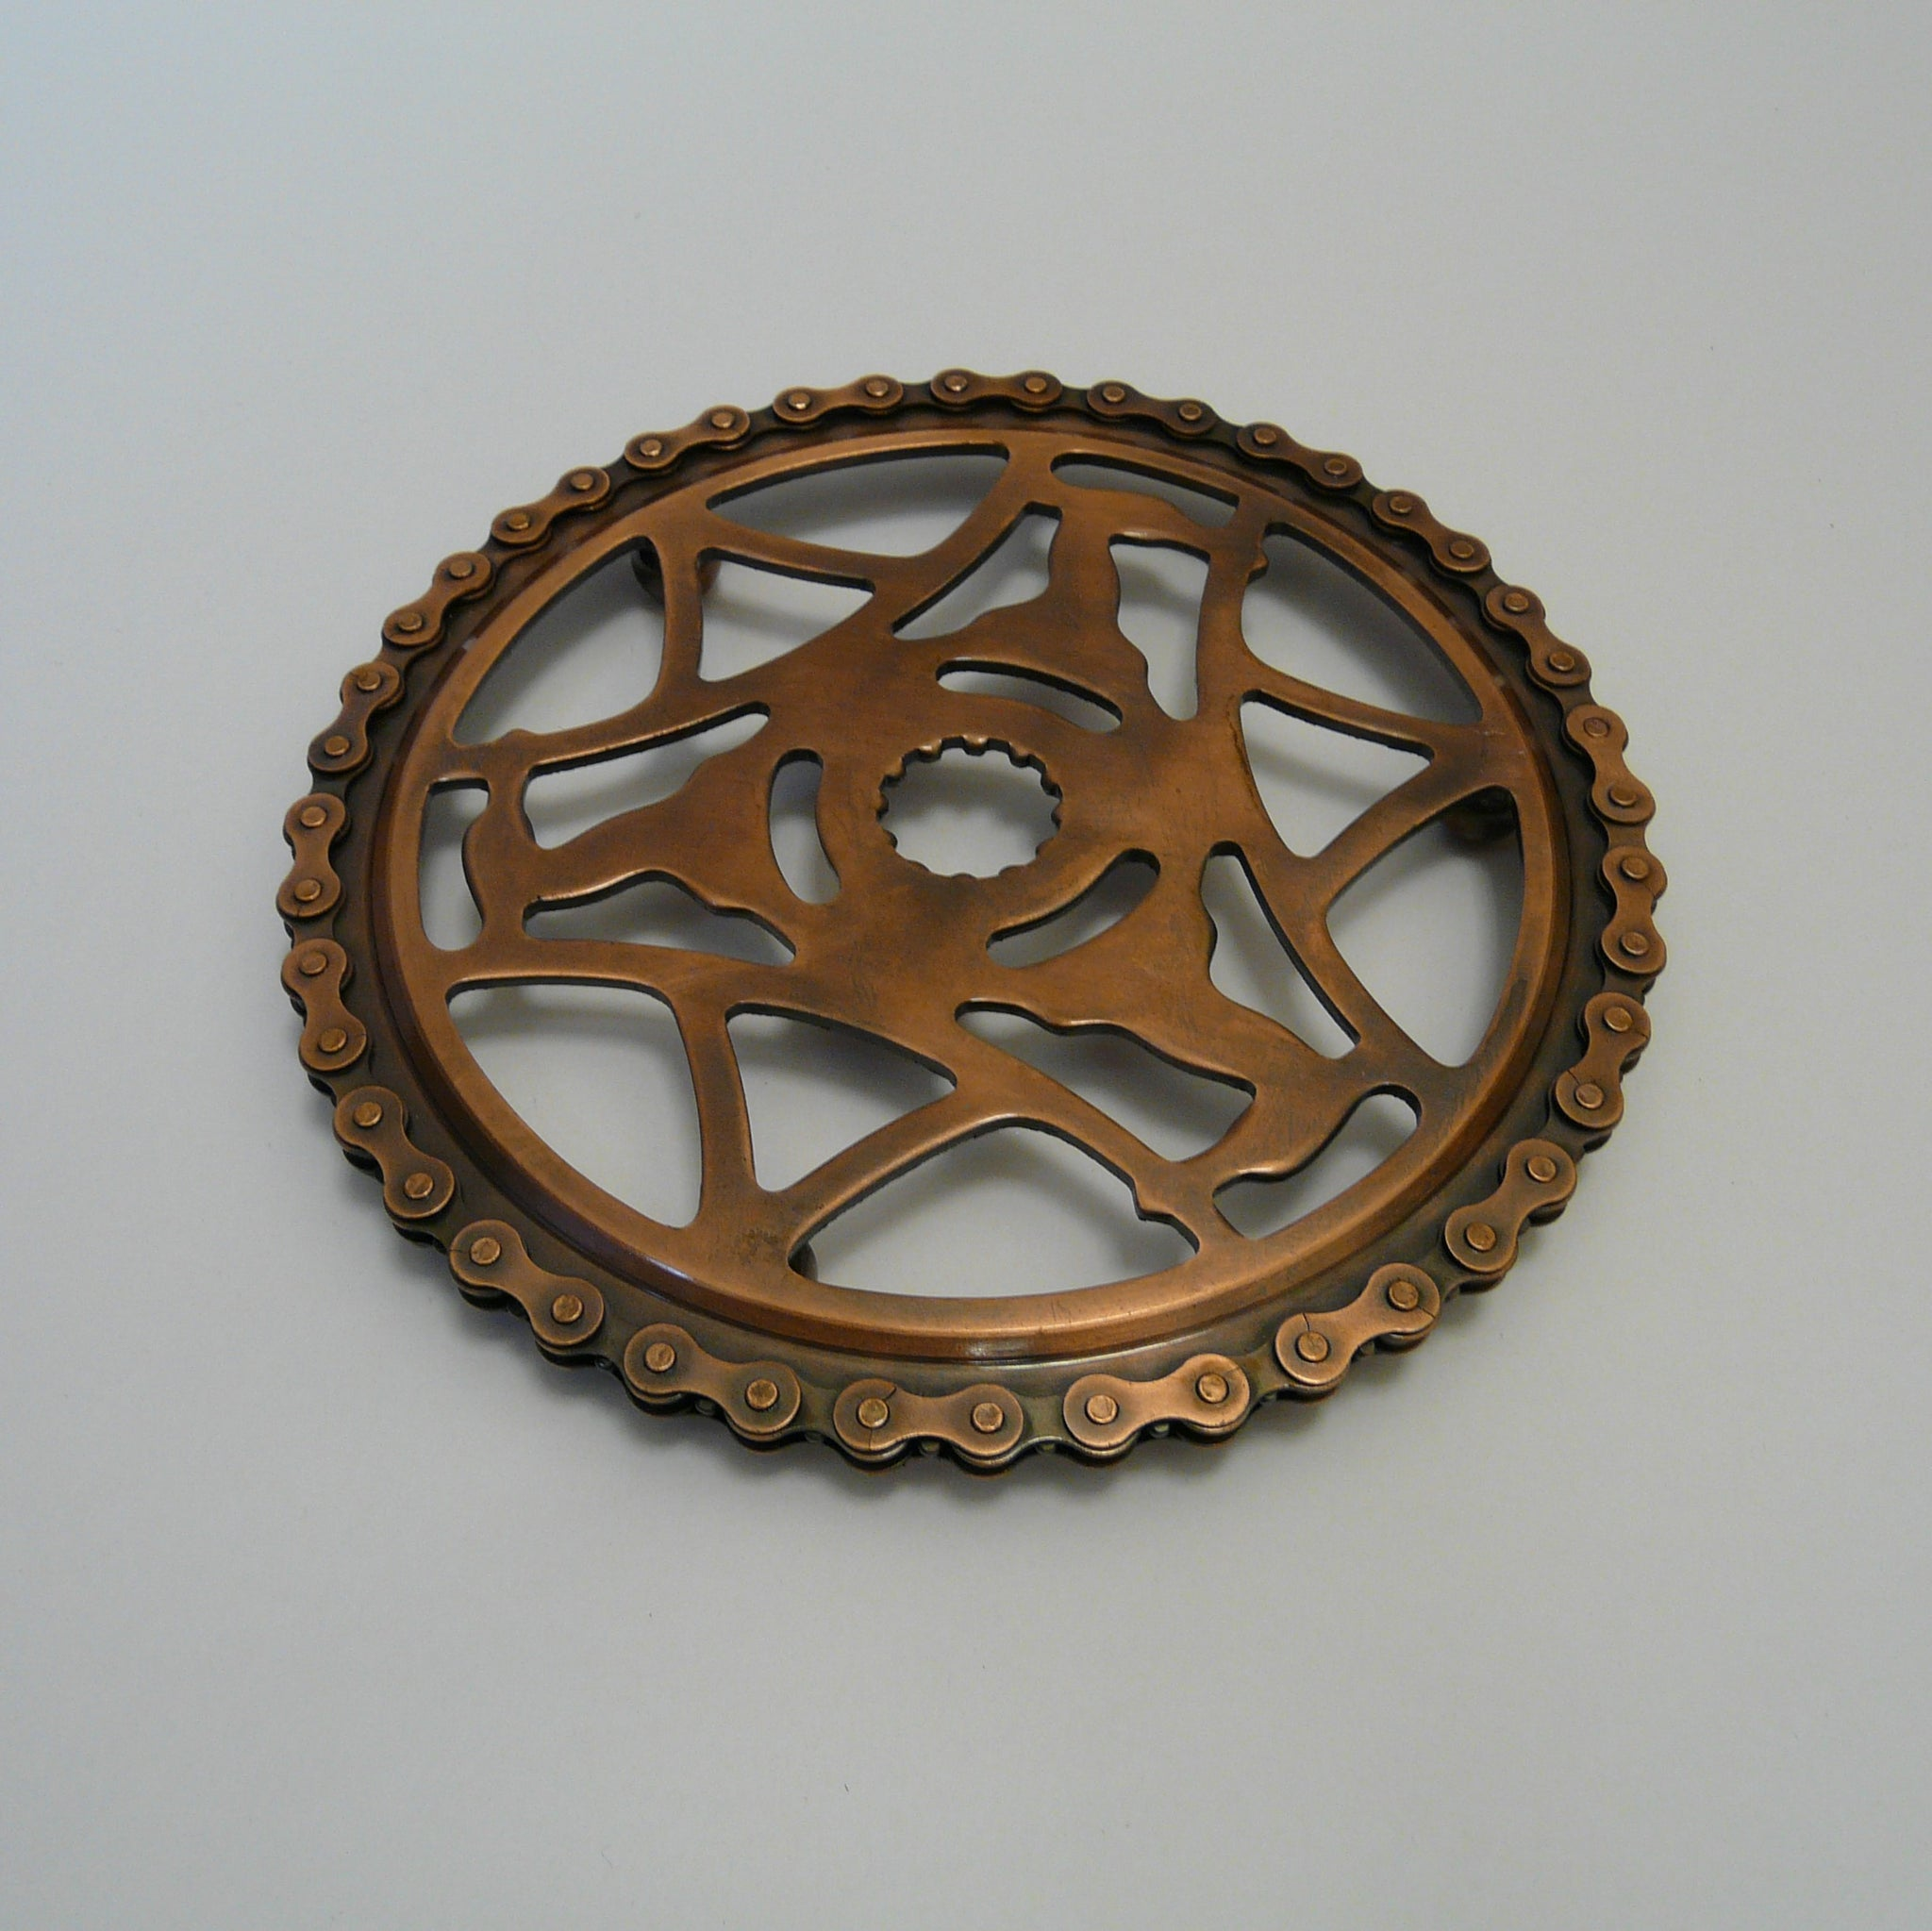 Upcycled Bike Chain Cog Trivet